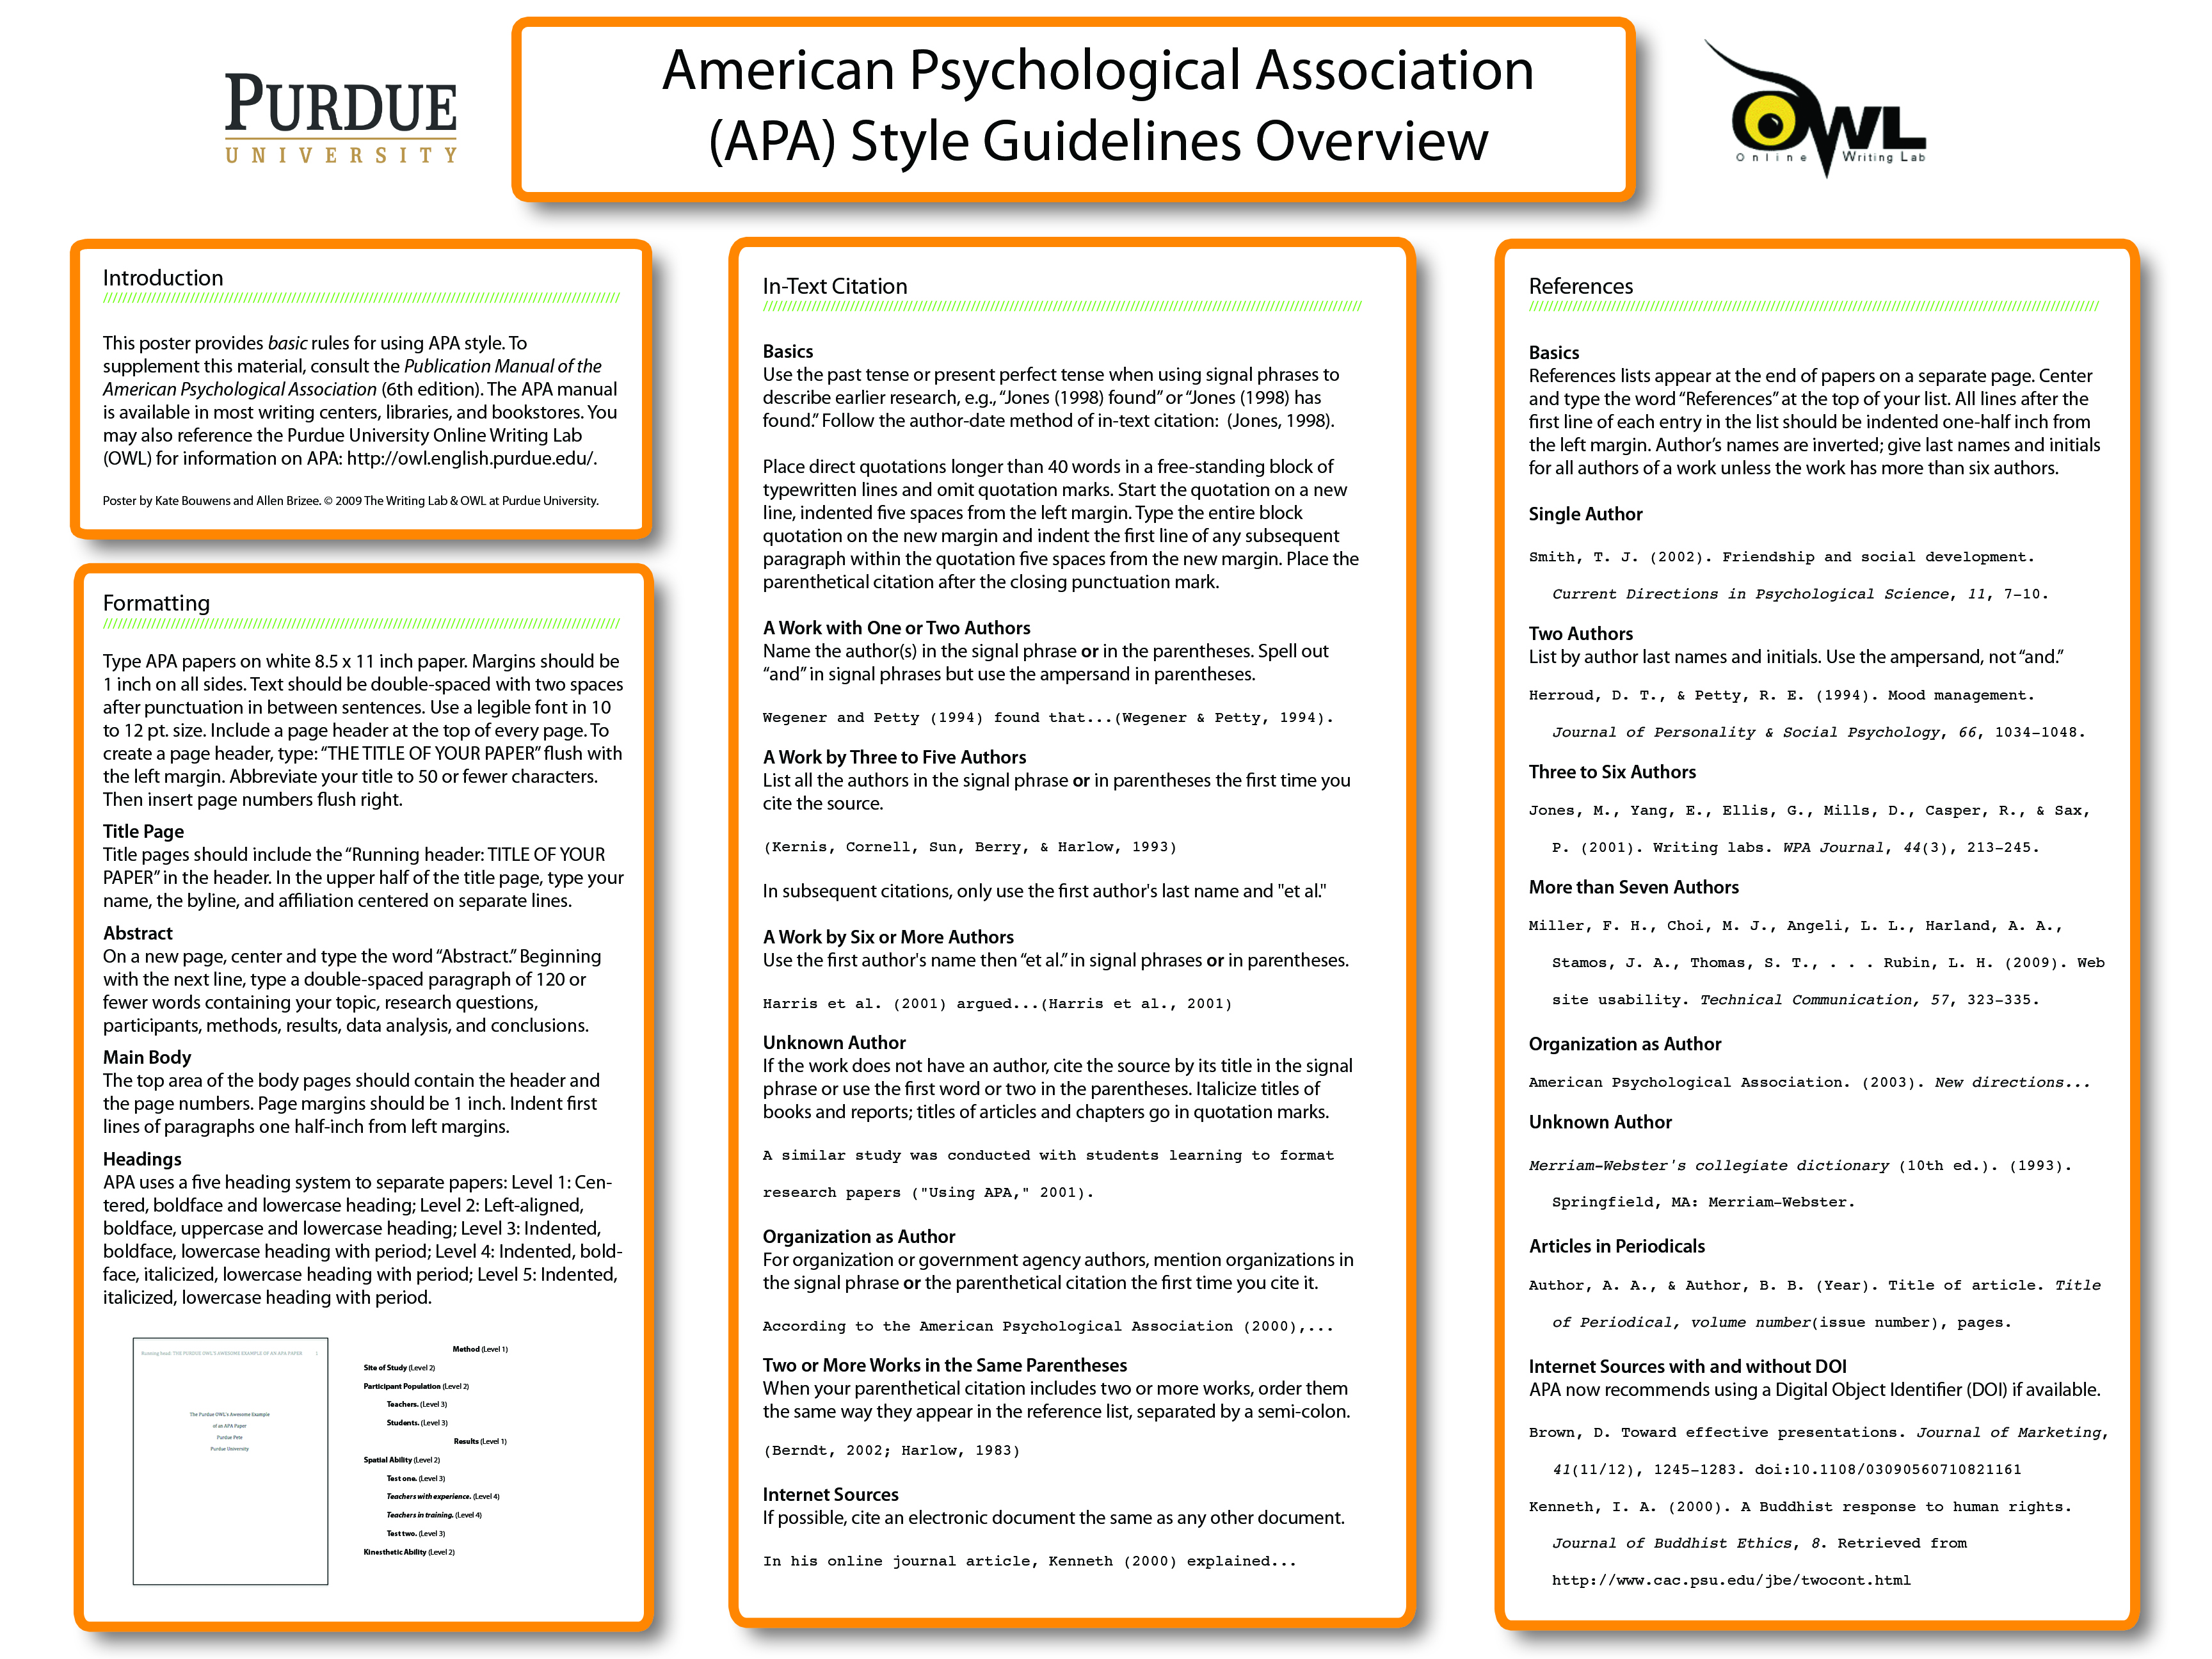 005 Research Paper Apaposter09 Apa Style Sample Frightening Owl Full